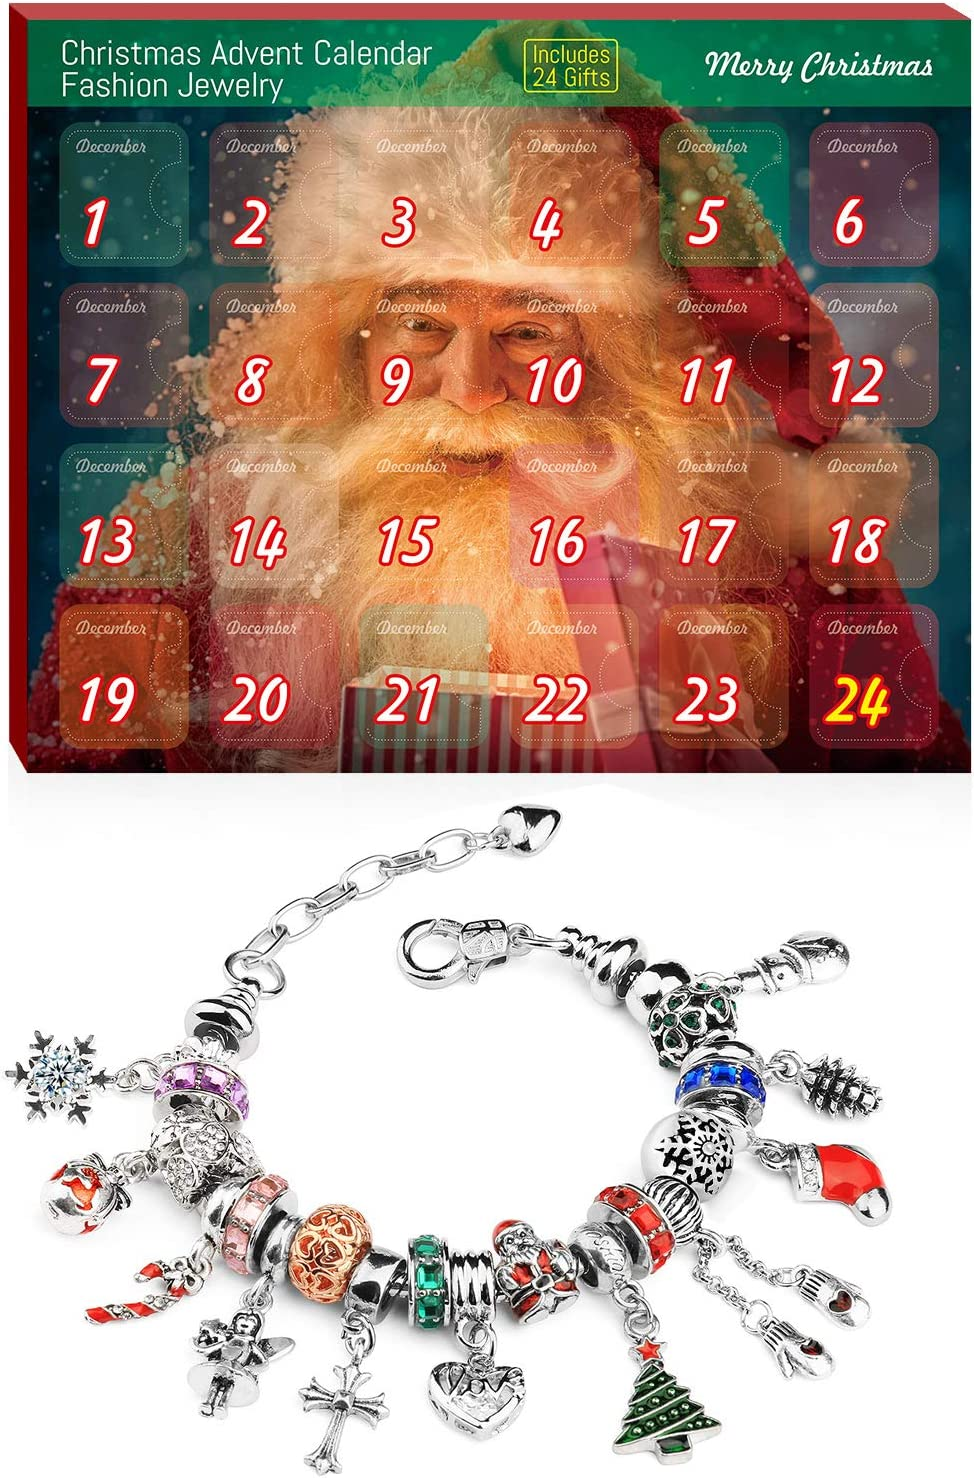 Advent Calendar, Christmas Advent Calendar, Jewelry with 1 Adjustable Bracelet and 23 Charm Beads Countdown to Christmas Calendar for Kids Girls Women DIY.